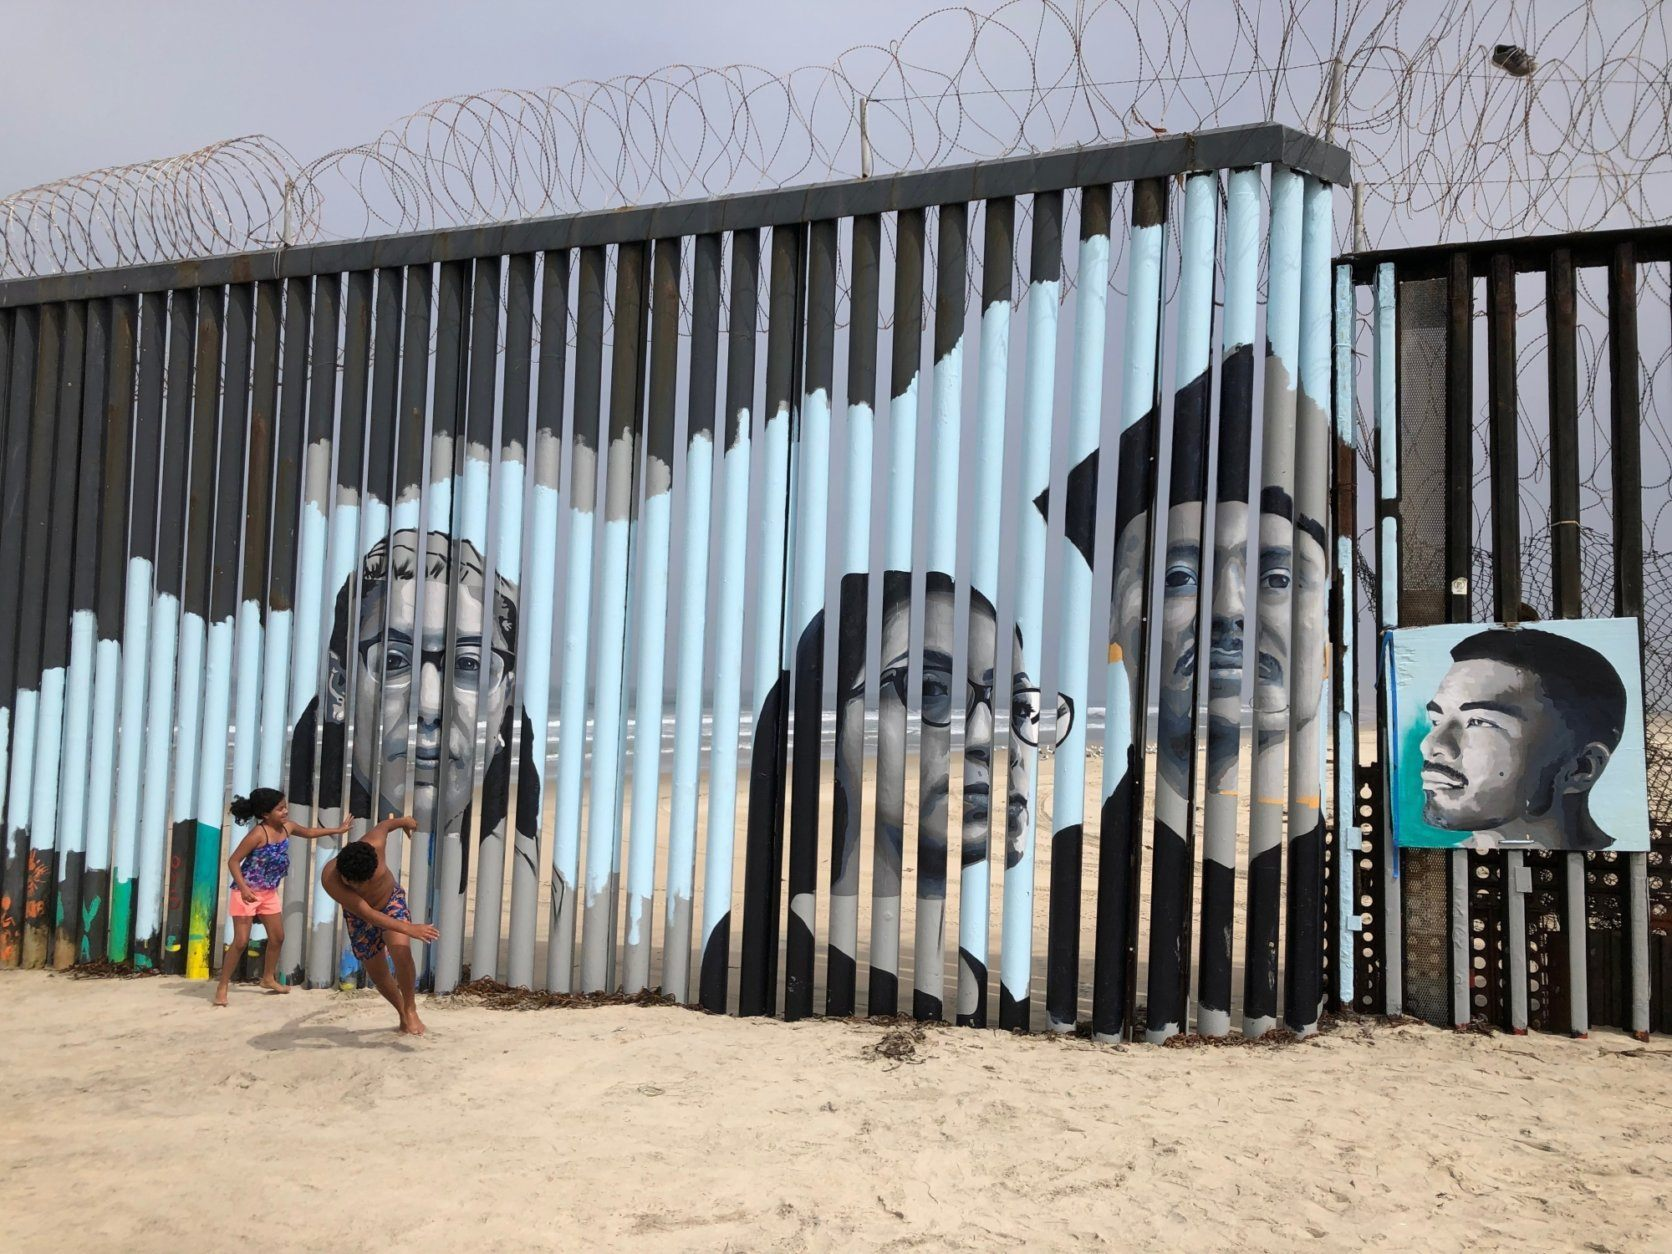 Children play in front of a new mural on the Mexican side of a border wall in Tijuana, Mexico Friday, Aug. 9, 2019. The mural shows faces of people deported from the U.S. with barcodes that activate first-person narratives on visitors' phones. Lizbeth De La Cruz Santana conceived the interactive mural in Tijuana as part of doctoral dissertation at the University of California, Davis. (AP Photo/Elliot Spagat)